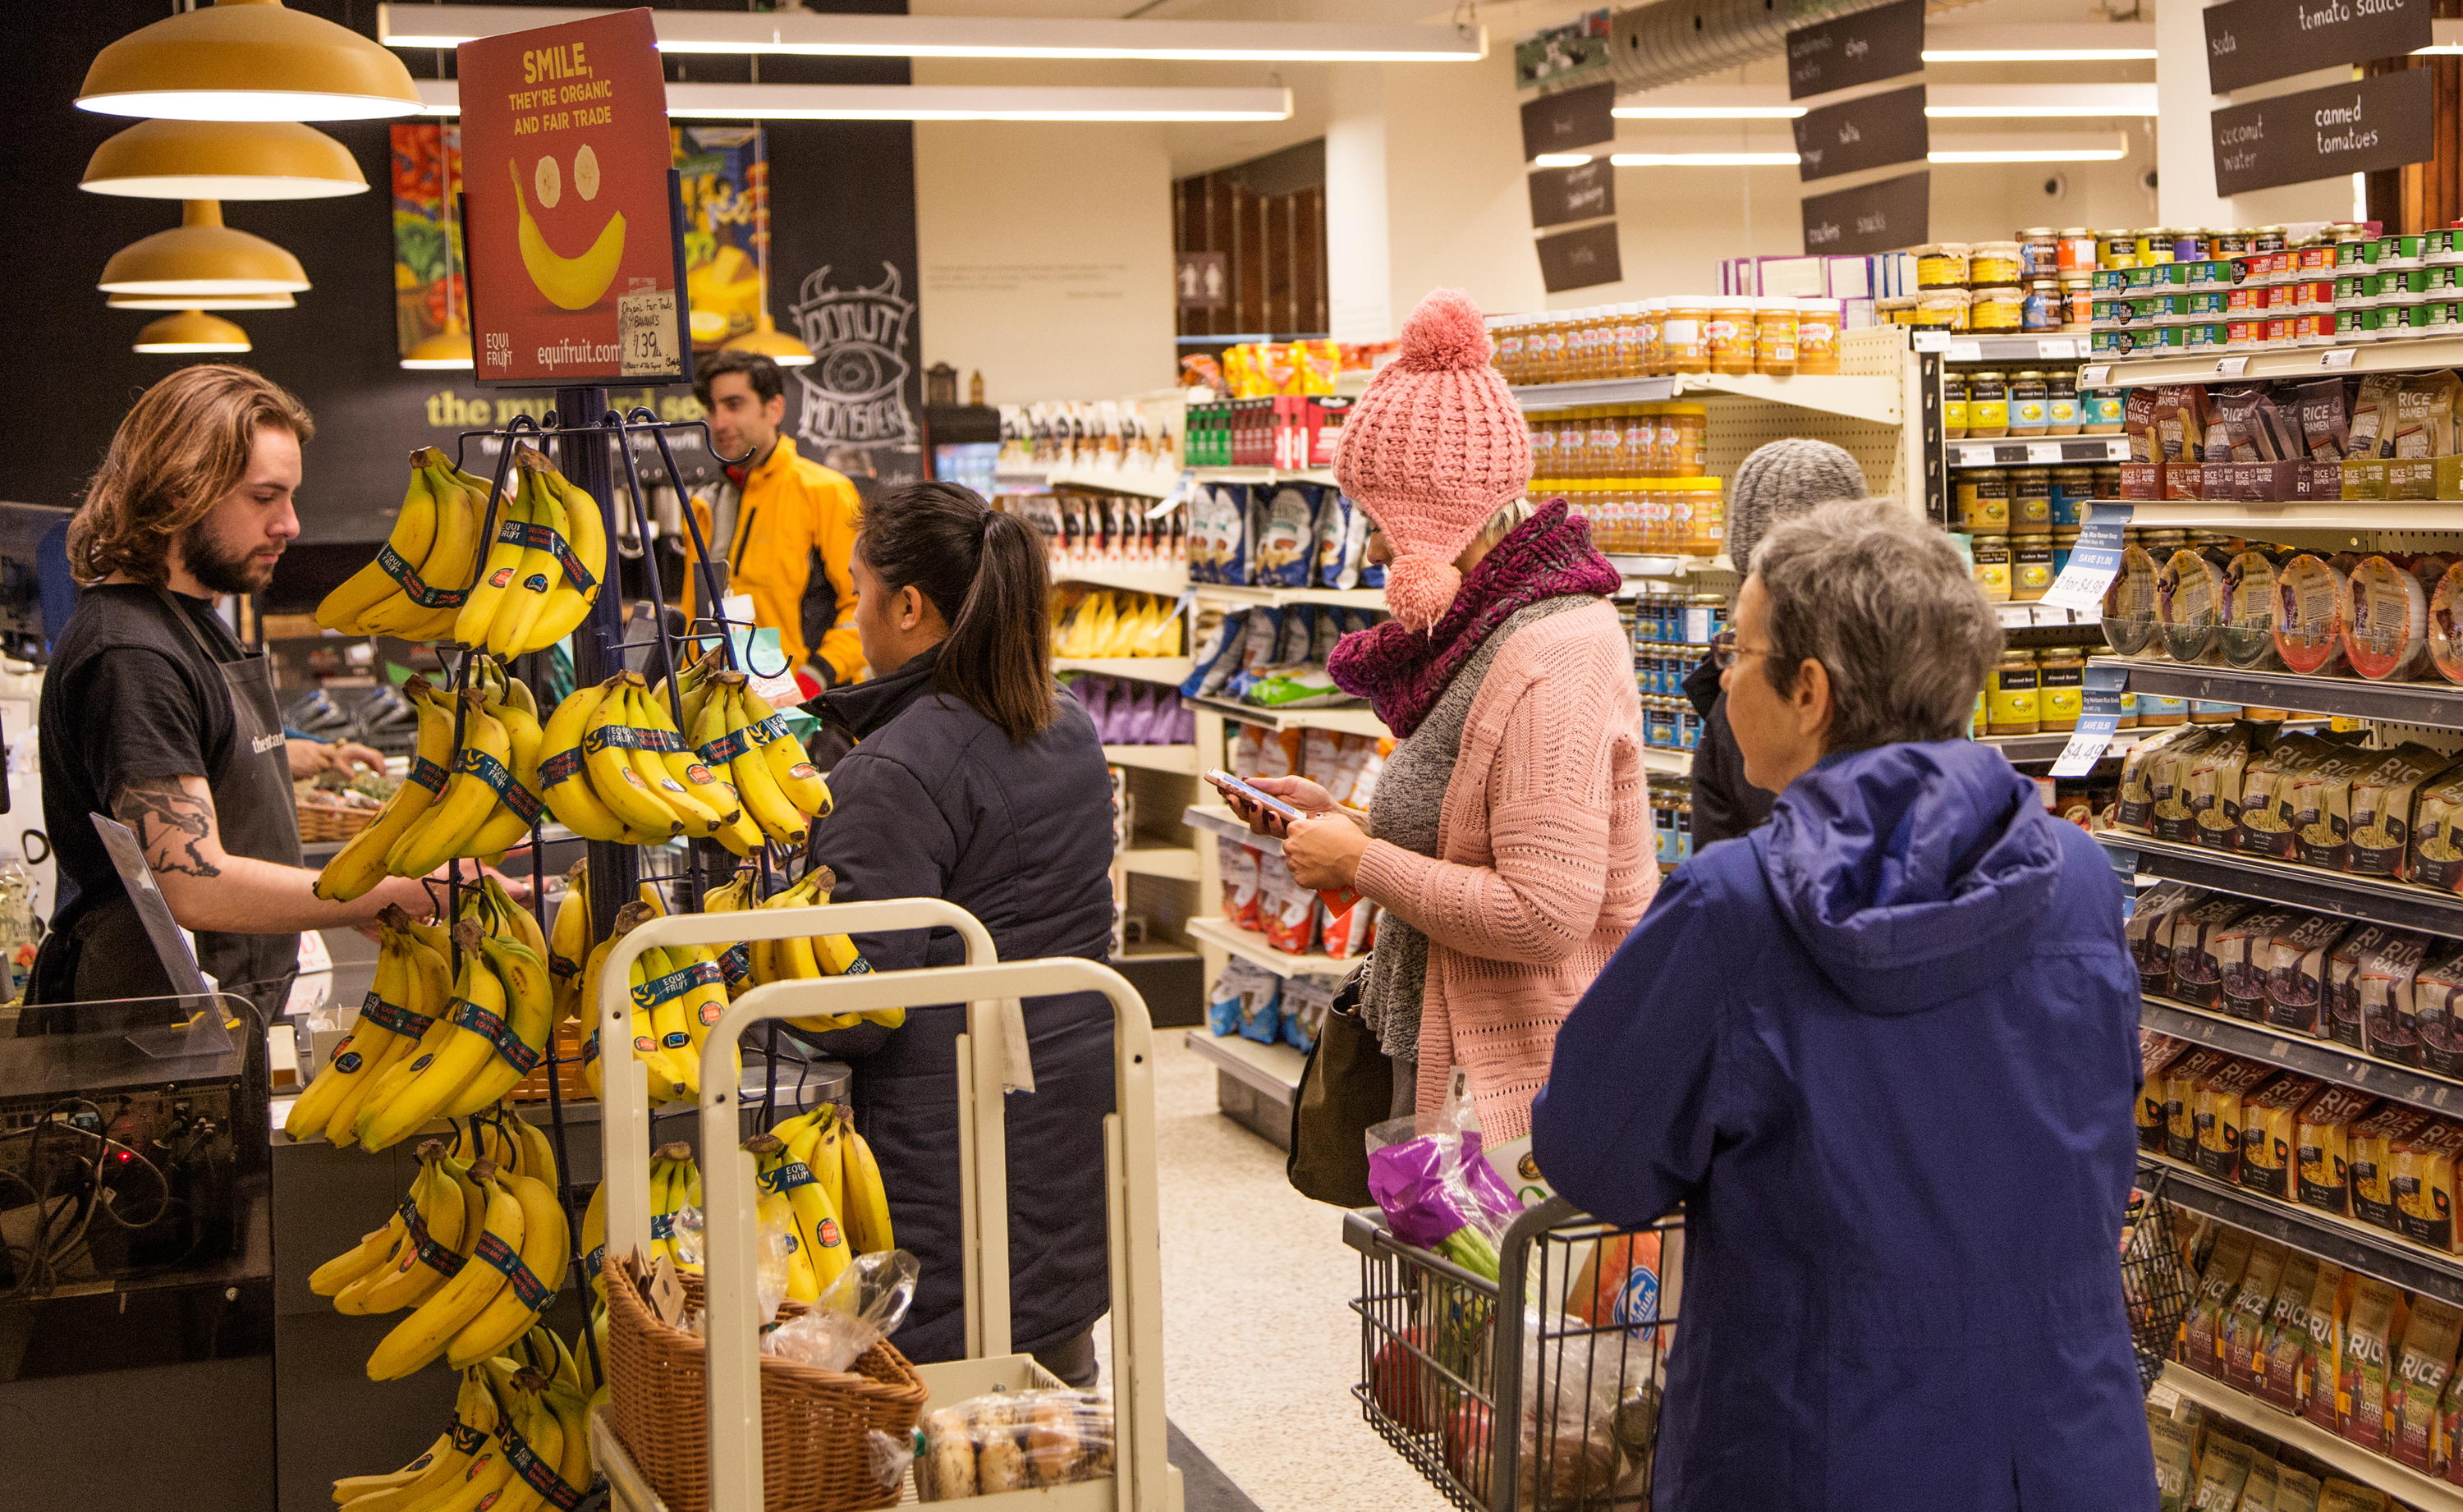 An employee serves customers buying groceries at The Mustard Seed